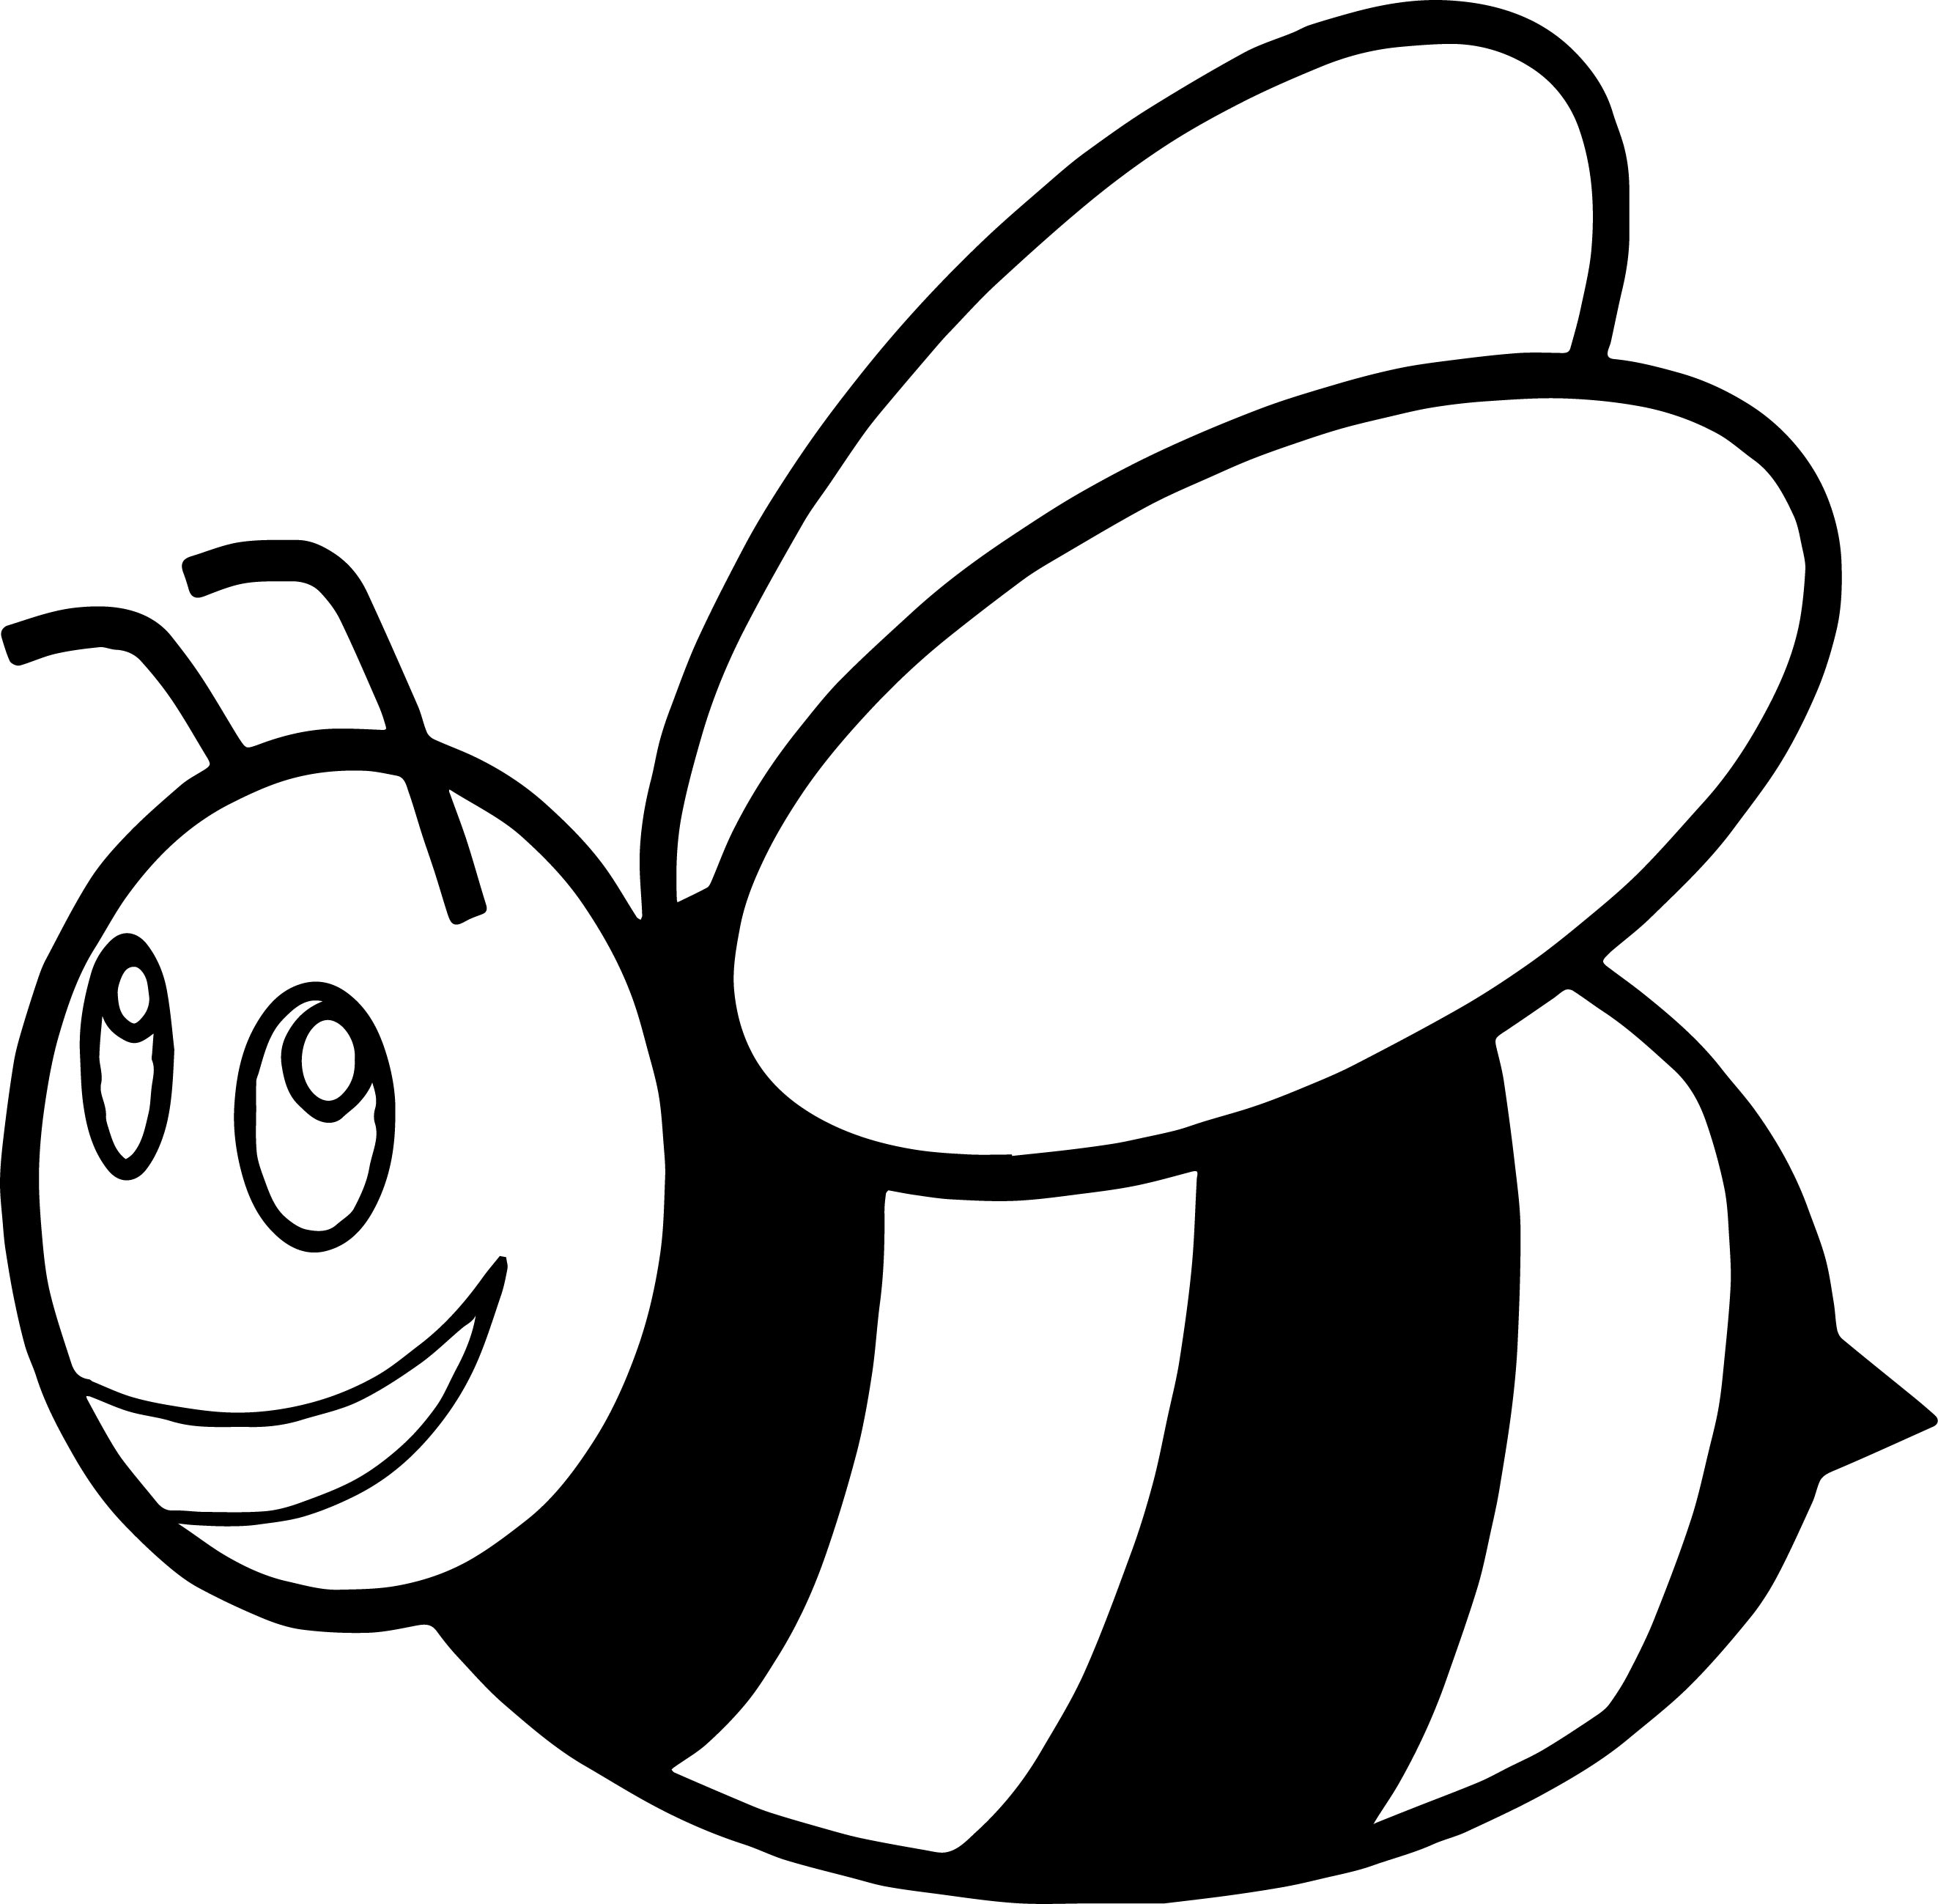 Cute Cartoon Bumble Bee Rubber Coaster Coloring Page